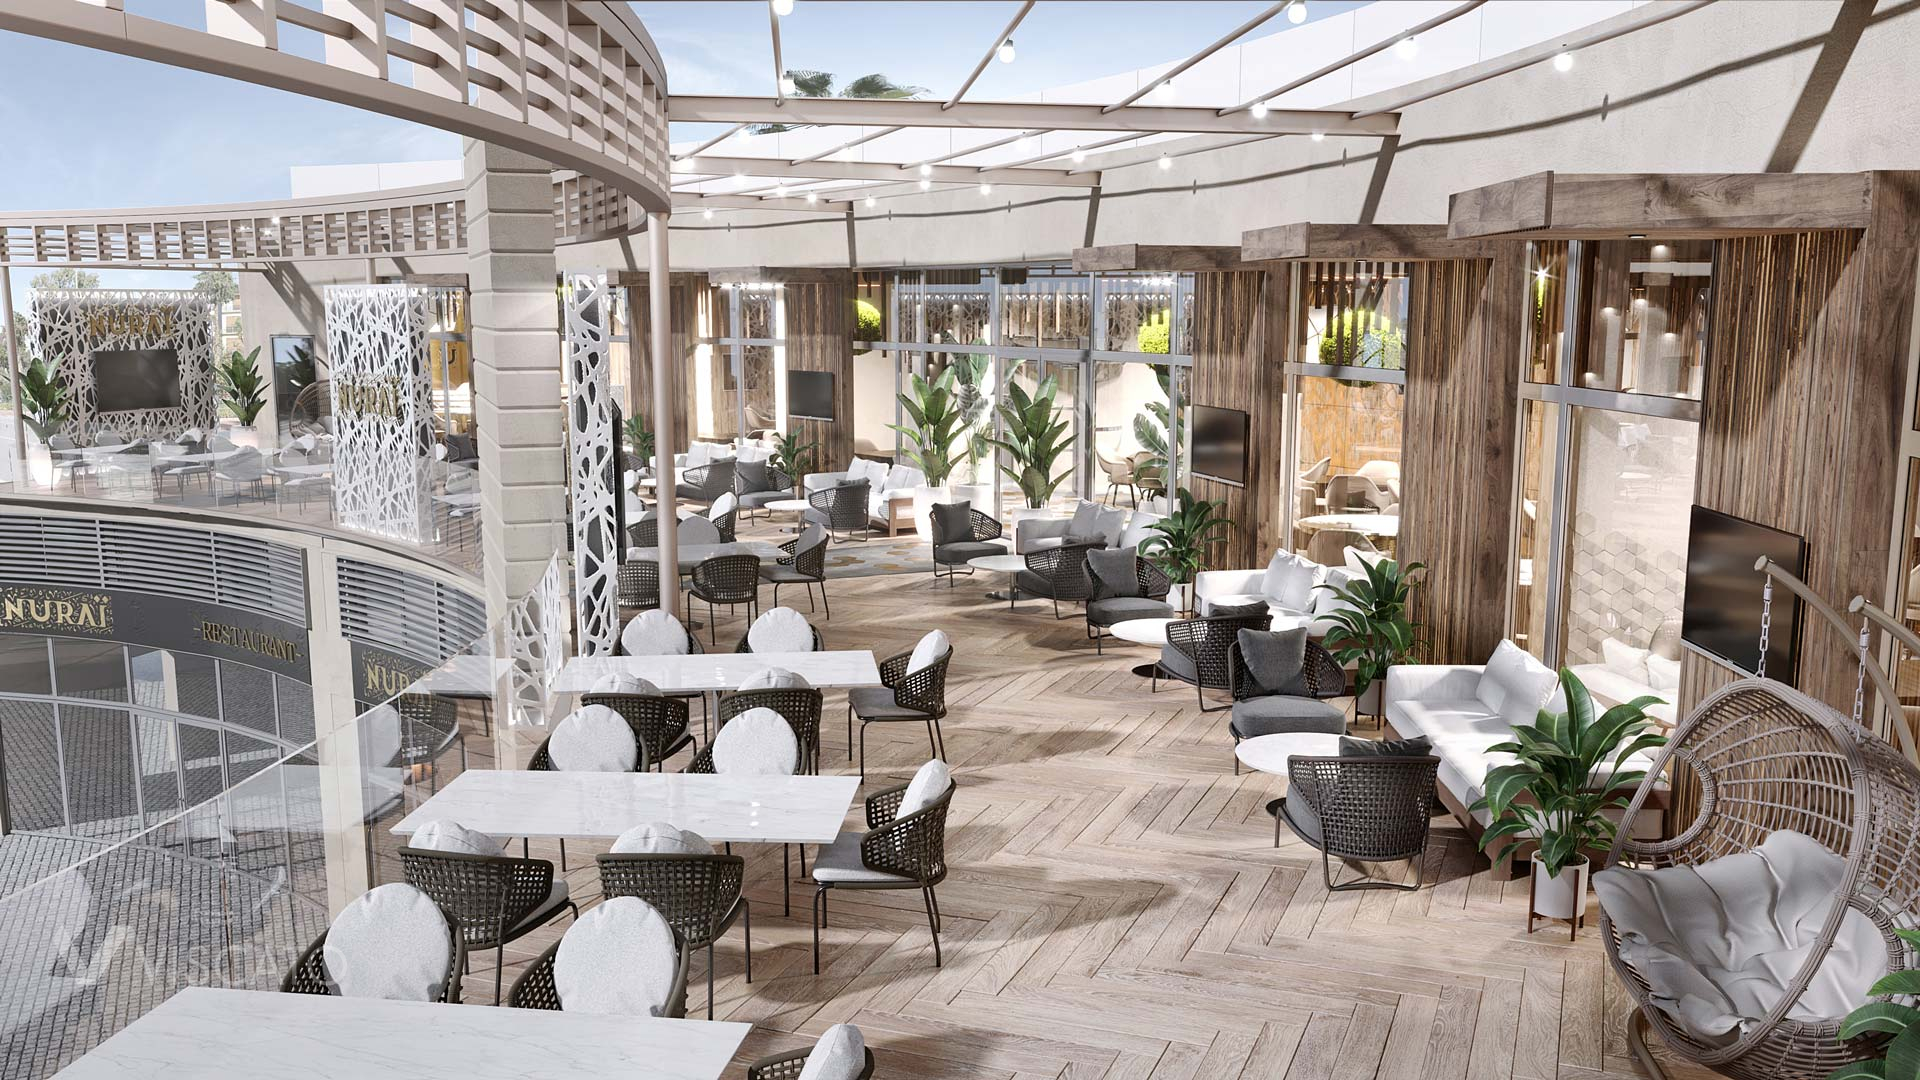 Restaurant terrace, 3D visualization